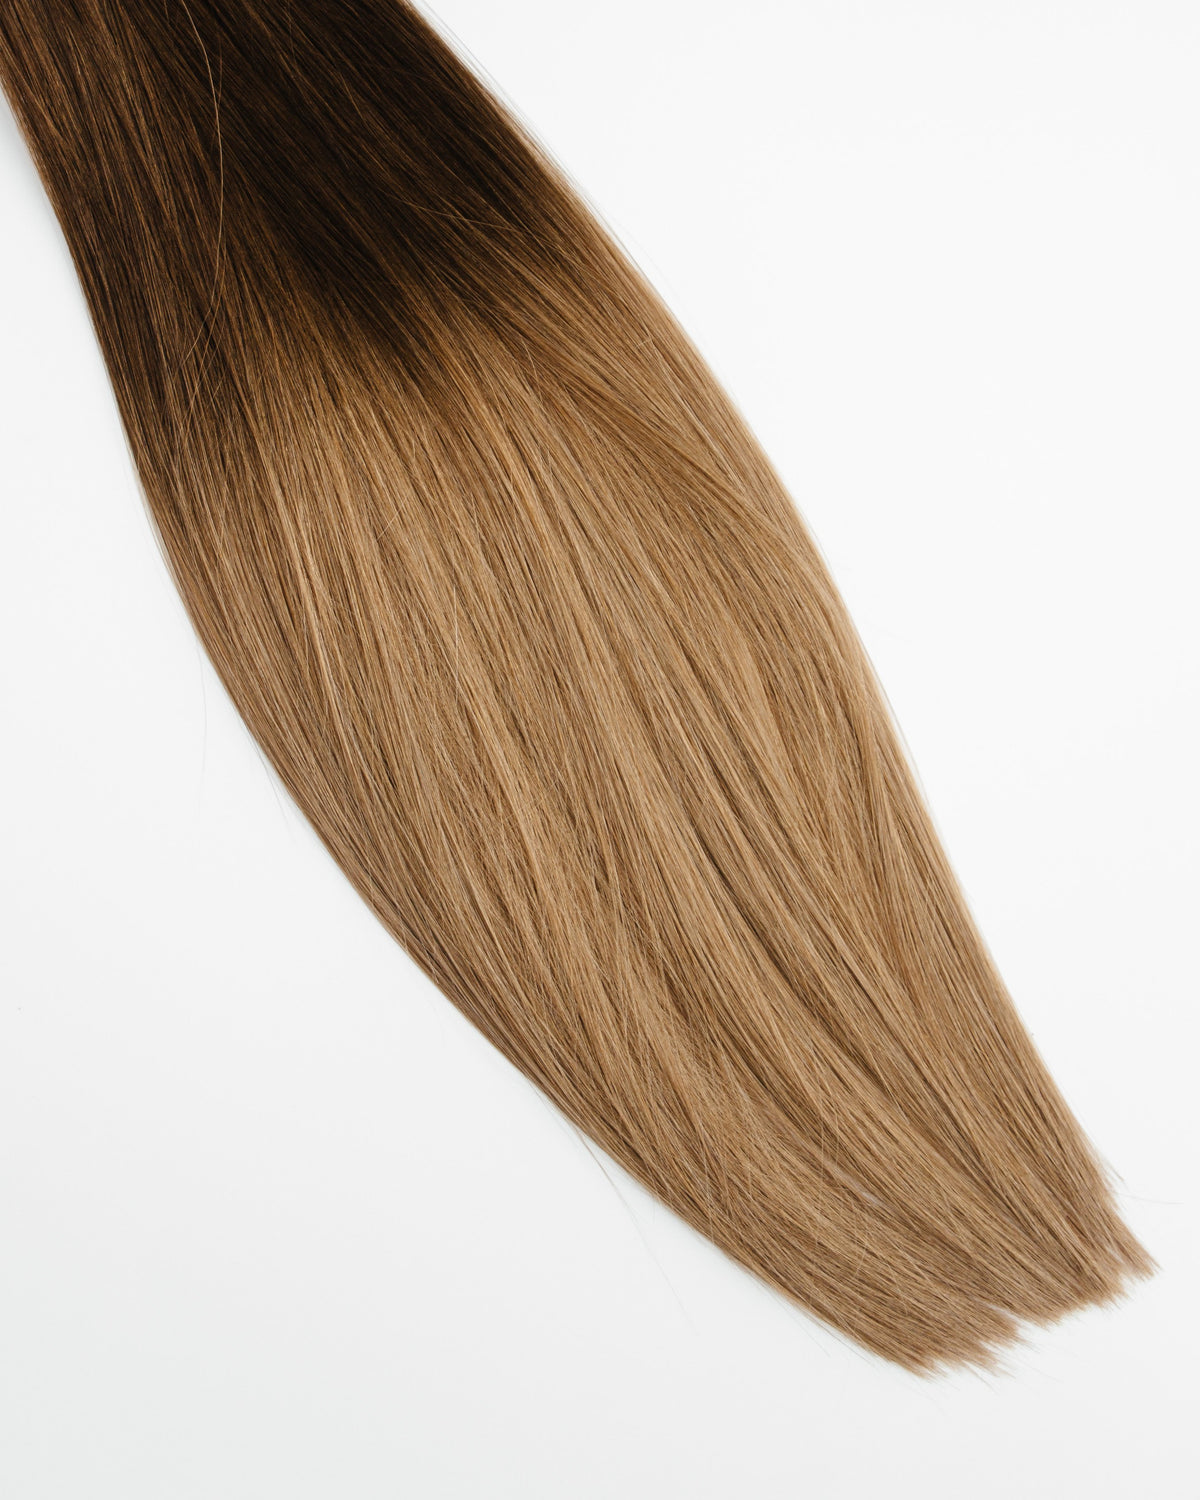 Laced Hair Tape-In Extensions Ombré #3/8 (Spiced Cider)